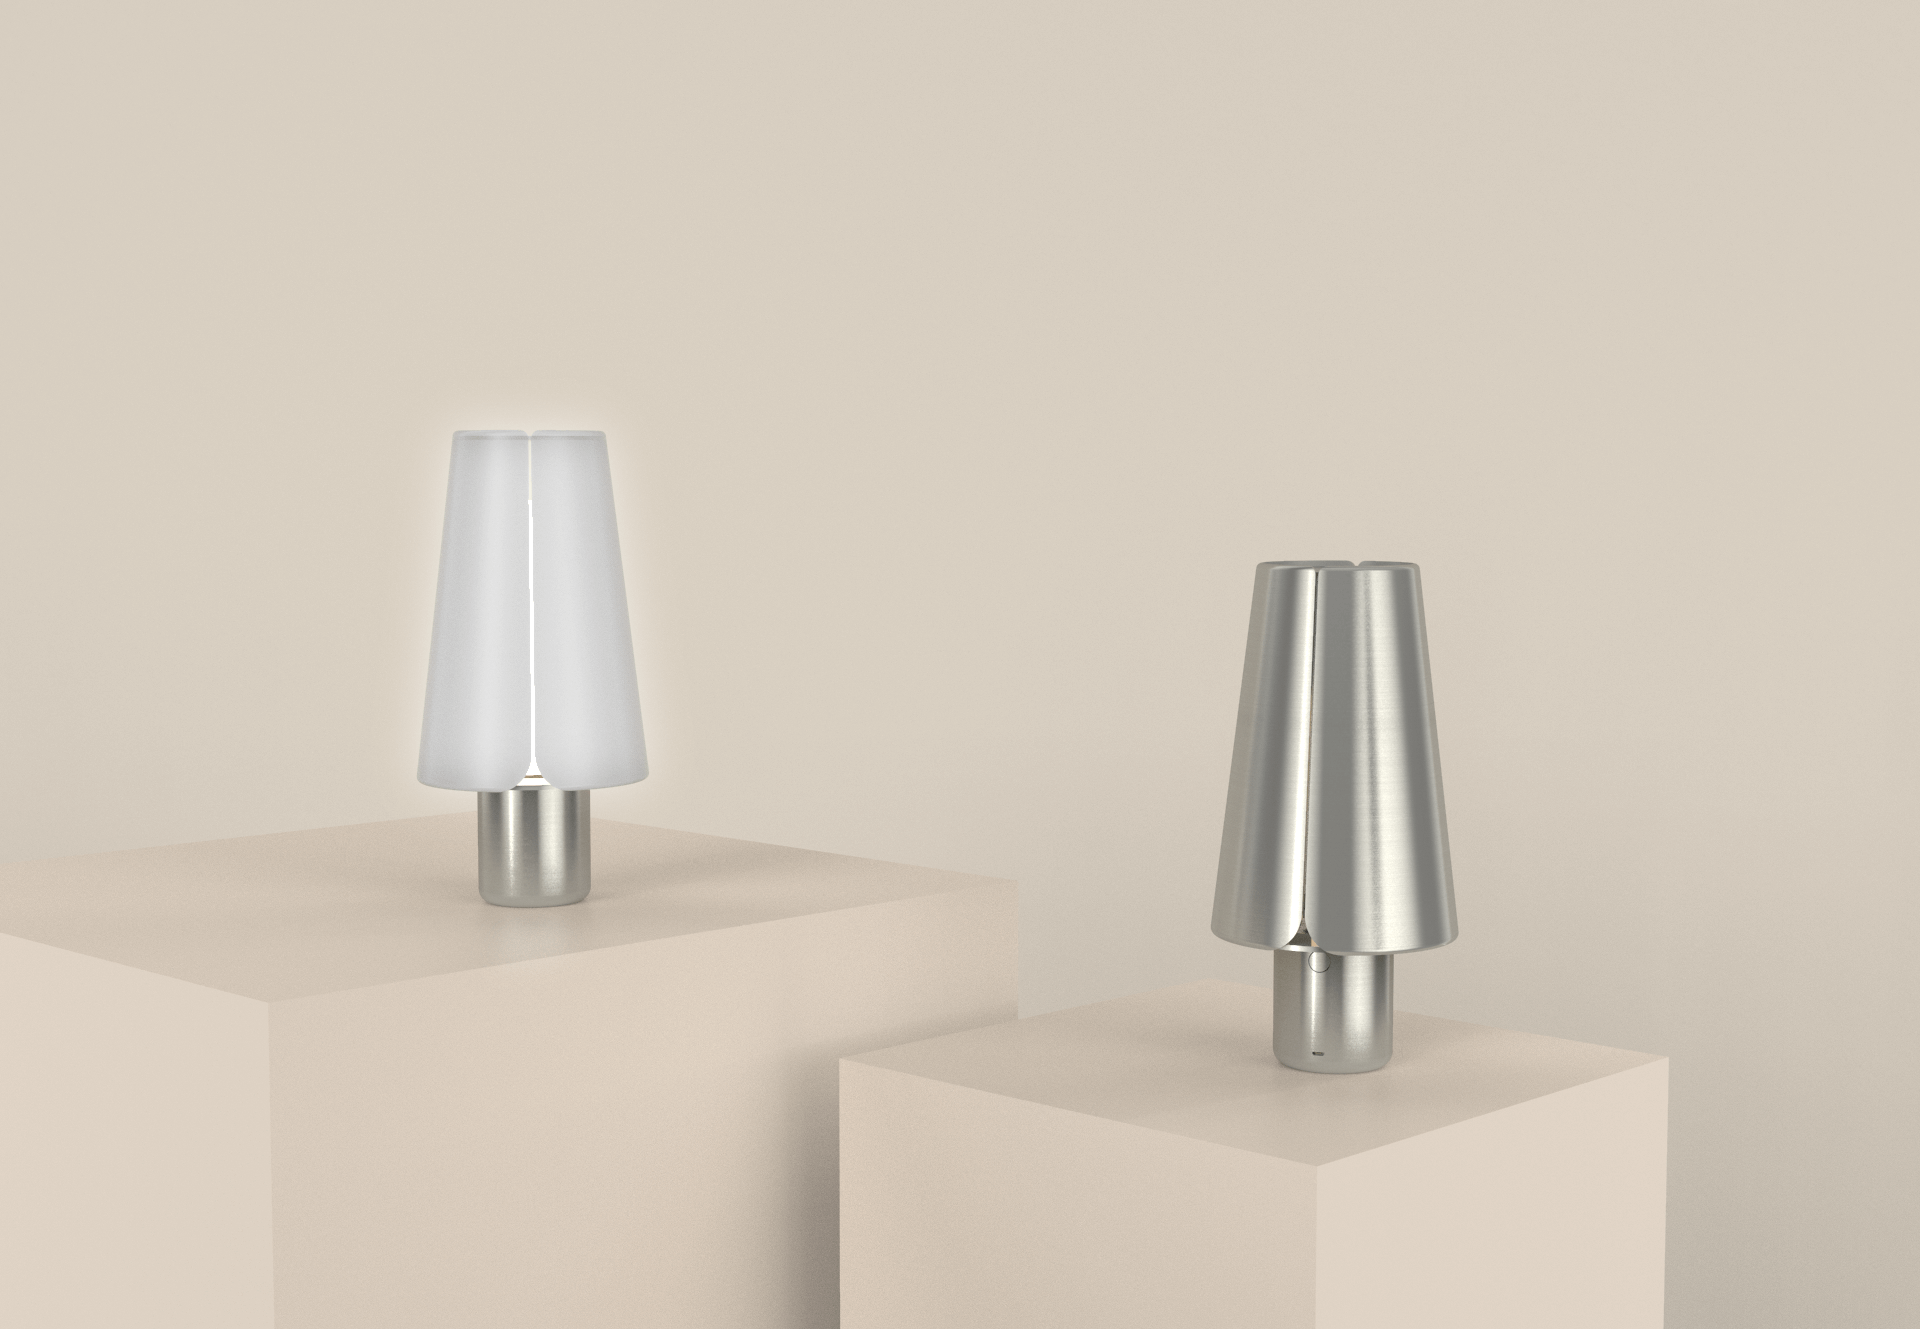 2-color-LAMP-SCENE_lighton